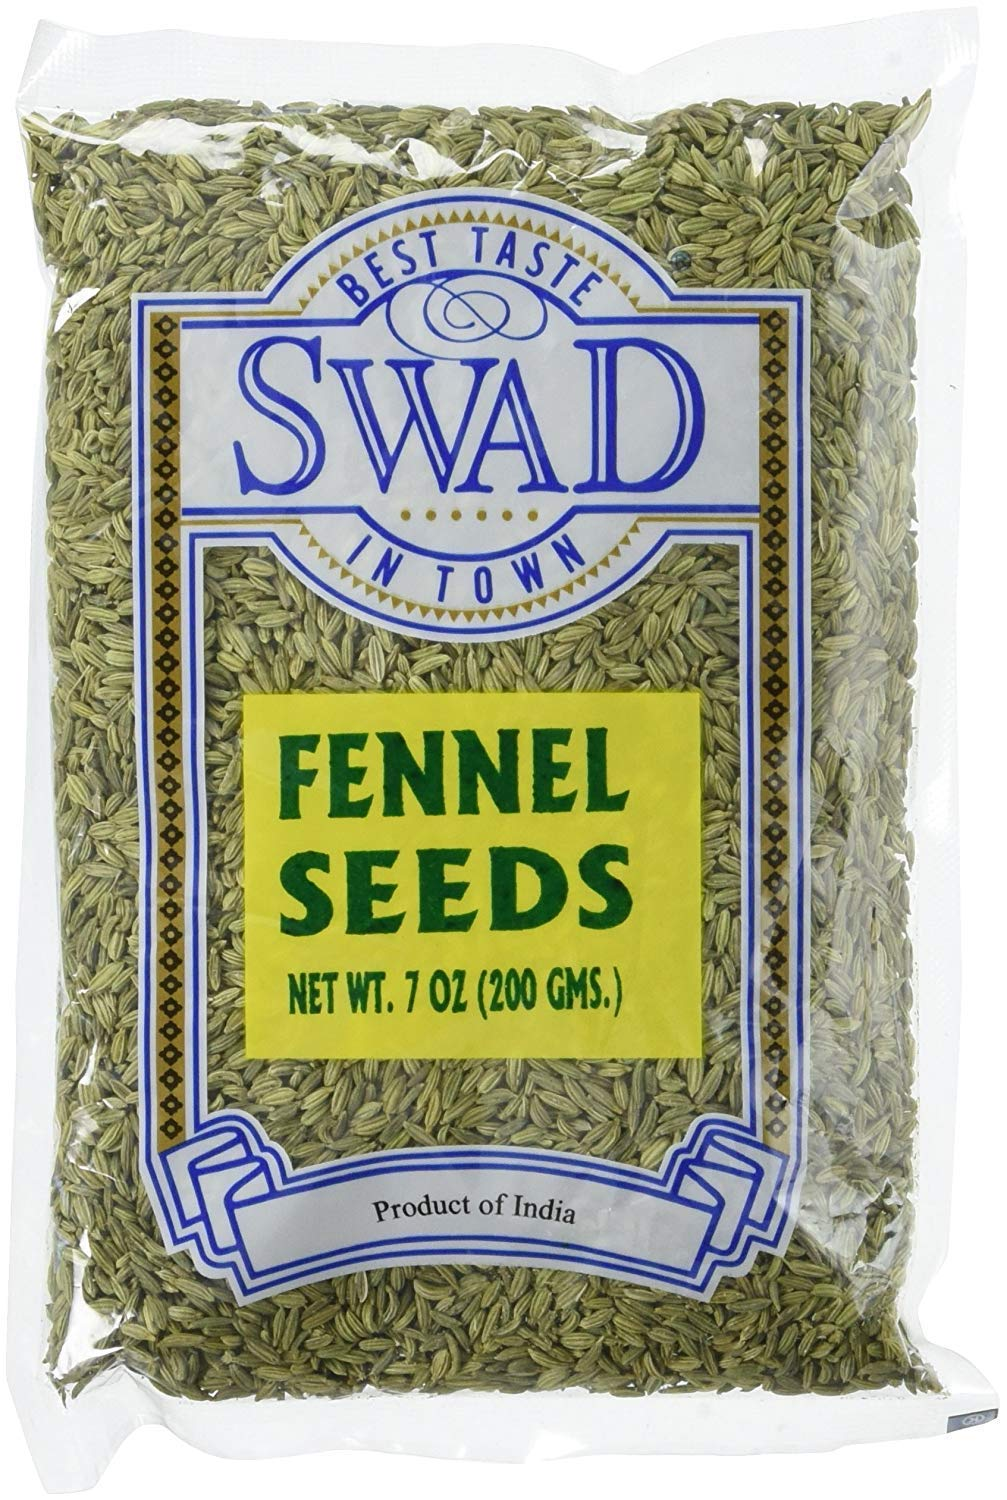 Great Bazaar Swad Fennel Sales for Ranking TOP4 sale 7 Ounce 7oz Seeds